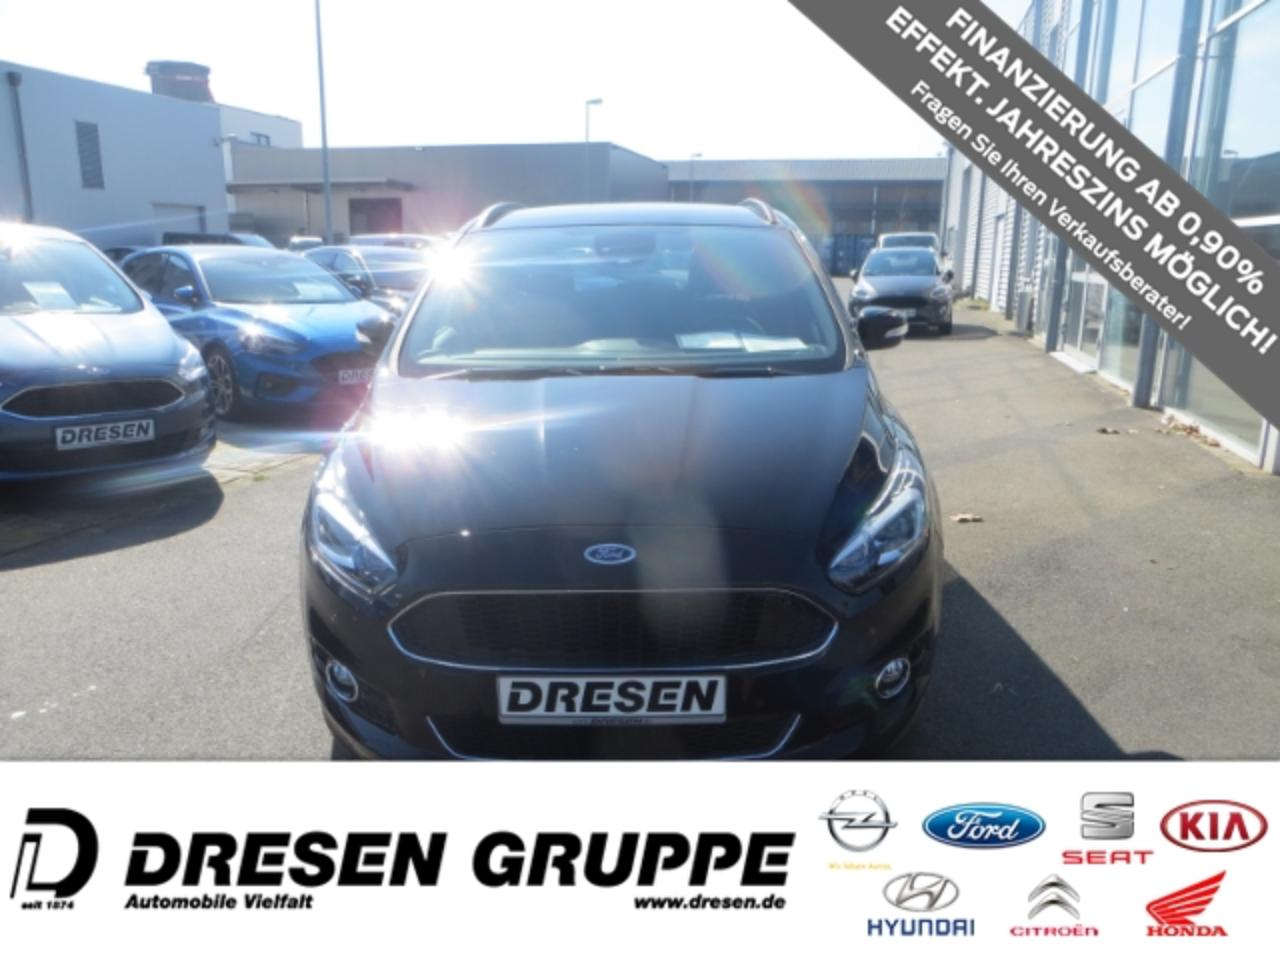 Ford S-Max ST-Line 1.5 EcoBoost, ACC,LED-Scheinwerfer,Navi,PD